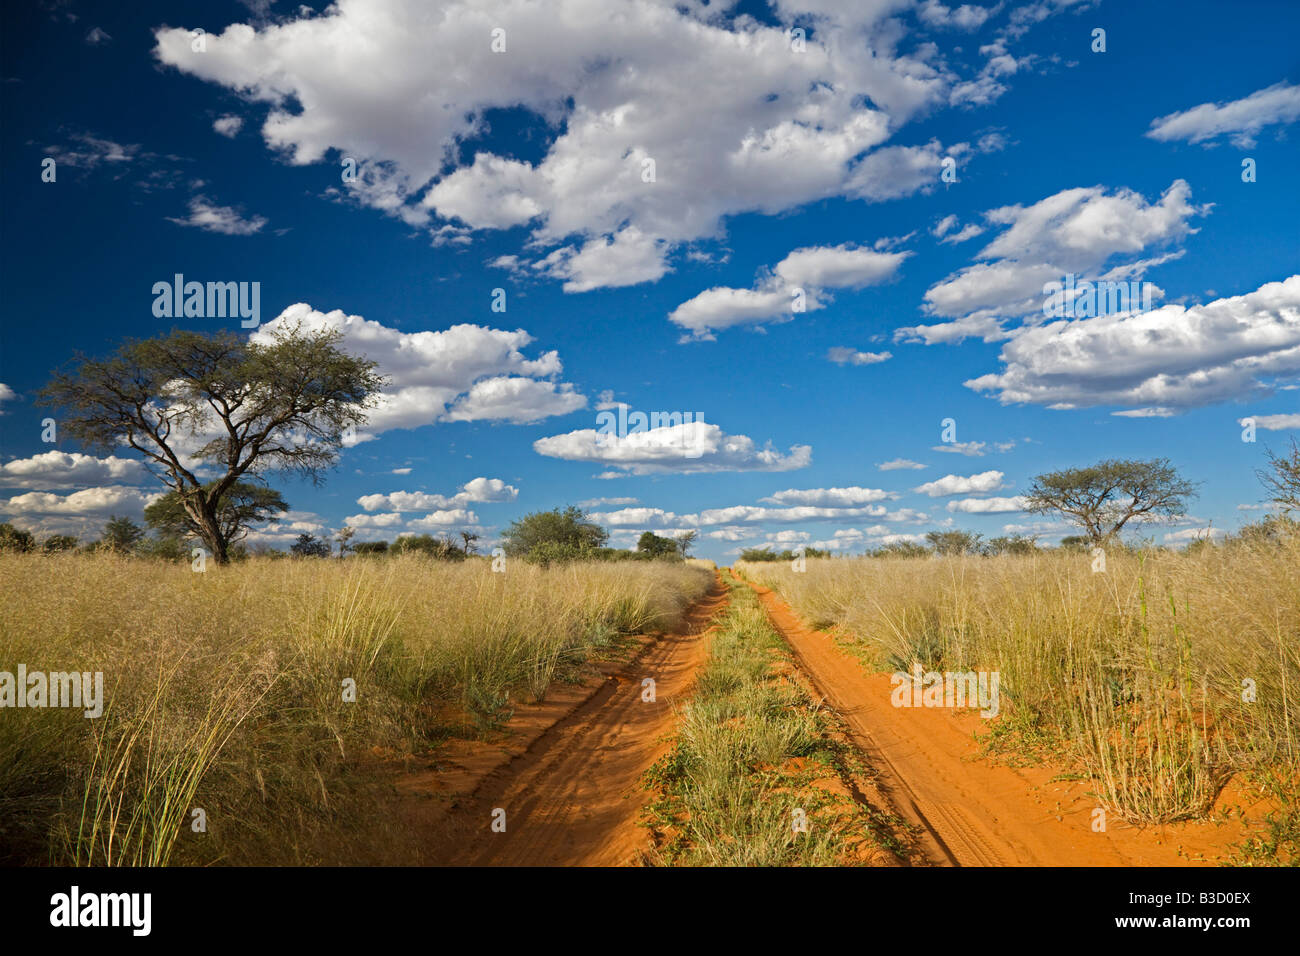 Africa, Botswana,Track through Kalahari Desert - Stock Image